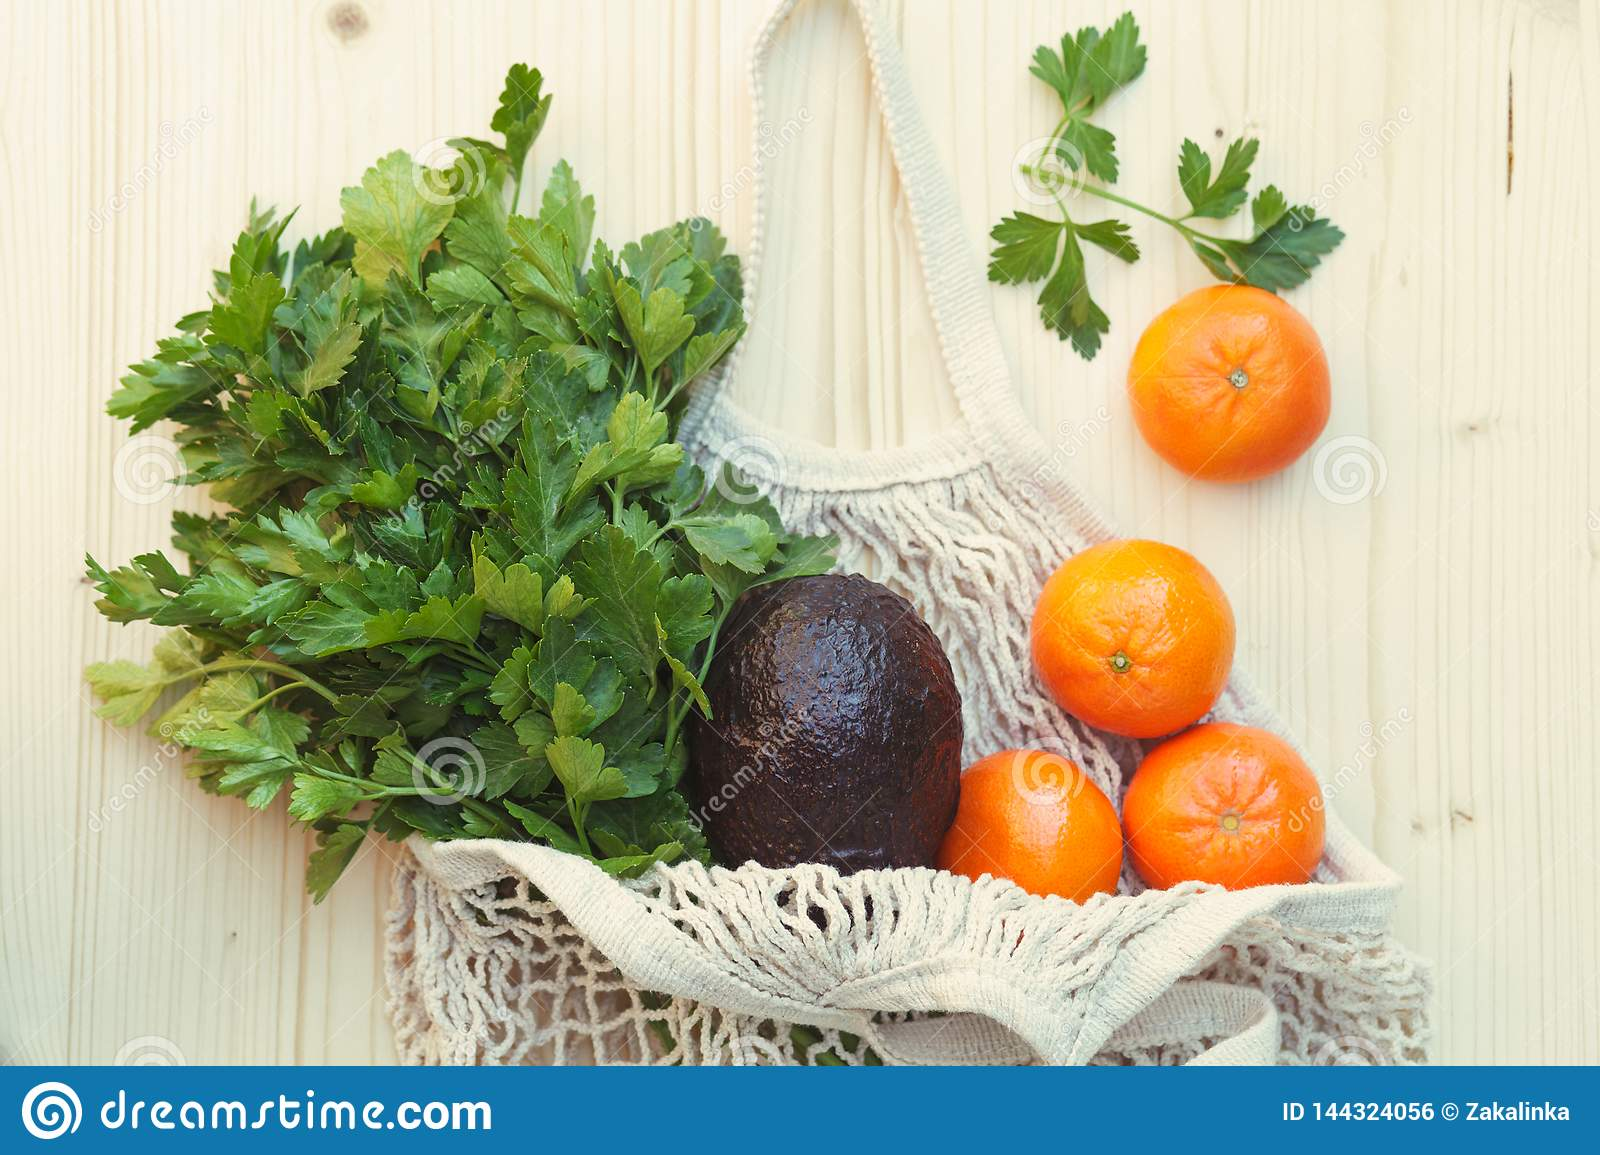 white eco-friendly reusable string bag with fresh fruits, herbs and vegetables, avocado, parsley, oranges on wooden background